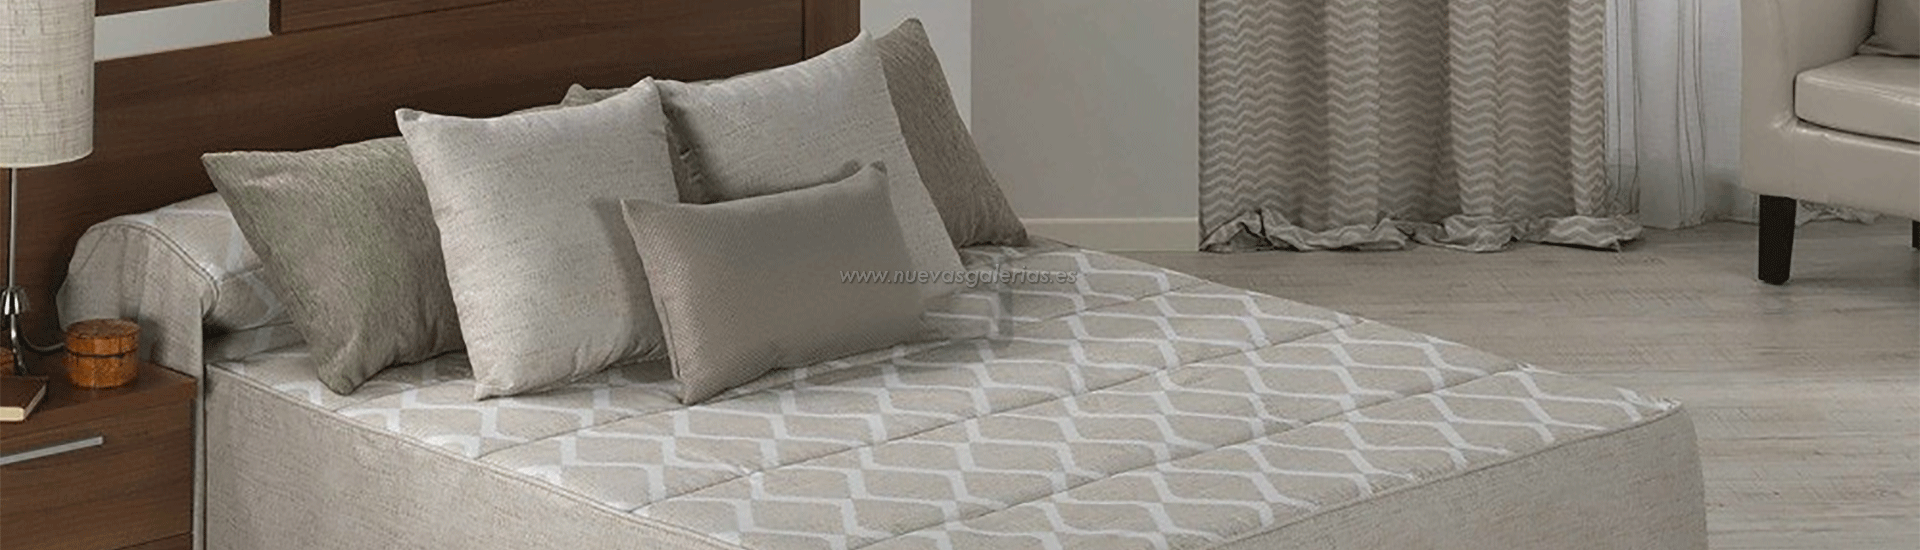 Quilting straight fall on the sides that will adapt perfectly to the bed thanks to the openings in its corners smooth designs prints or embroidery